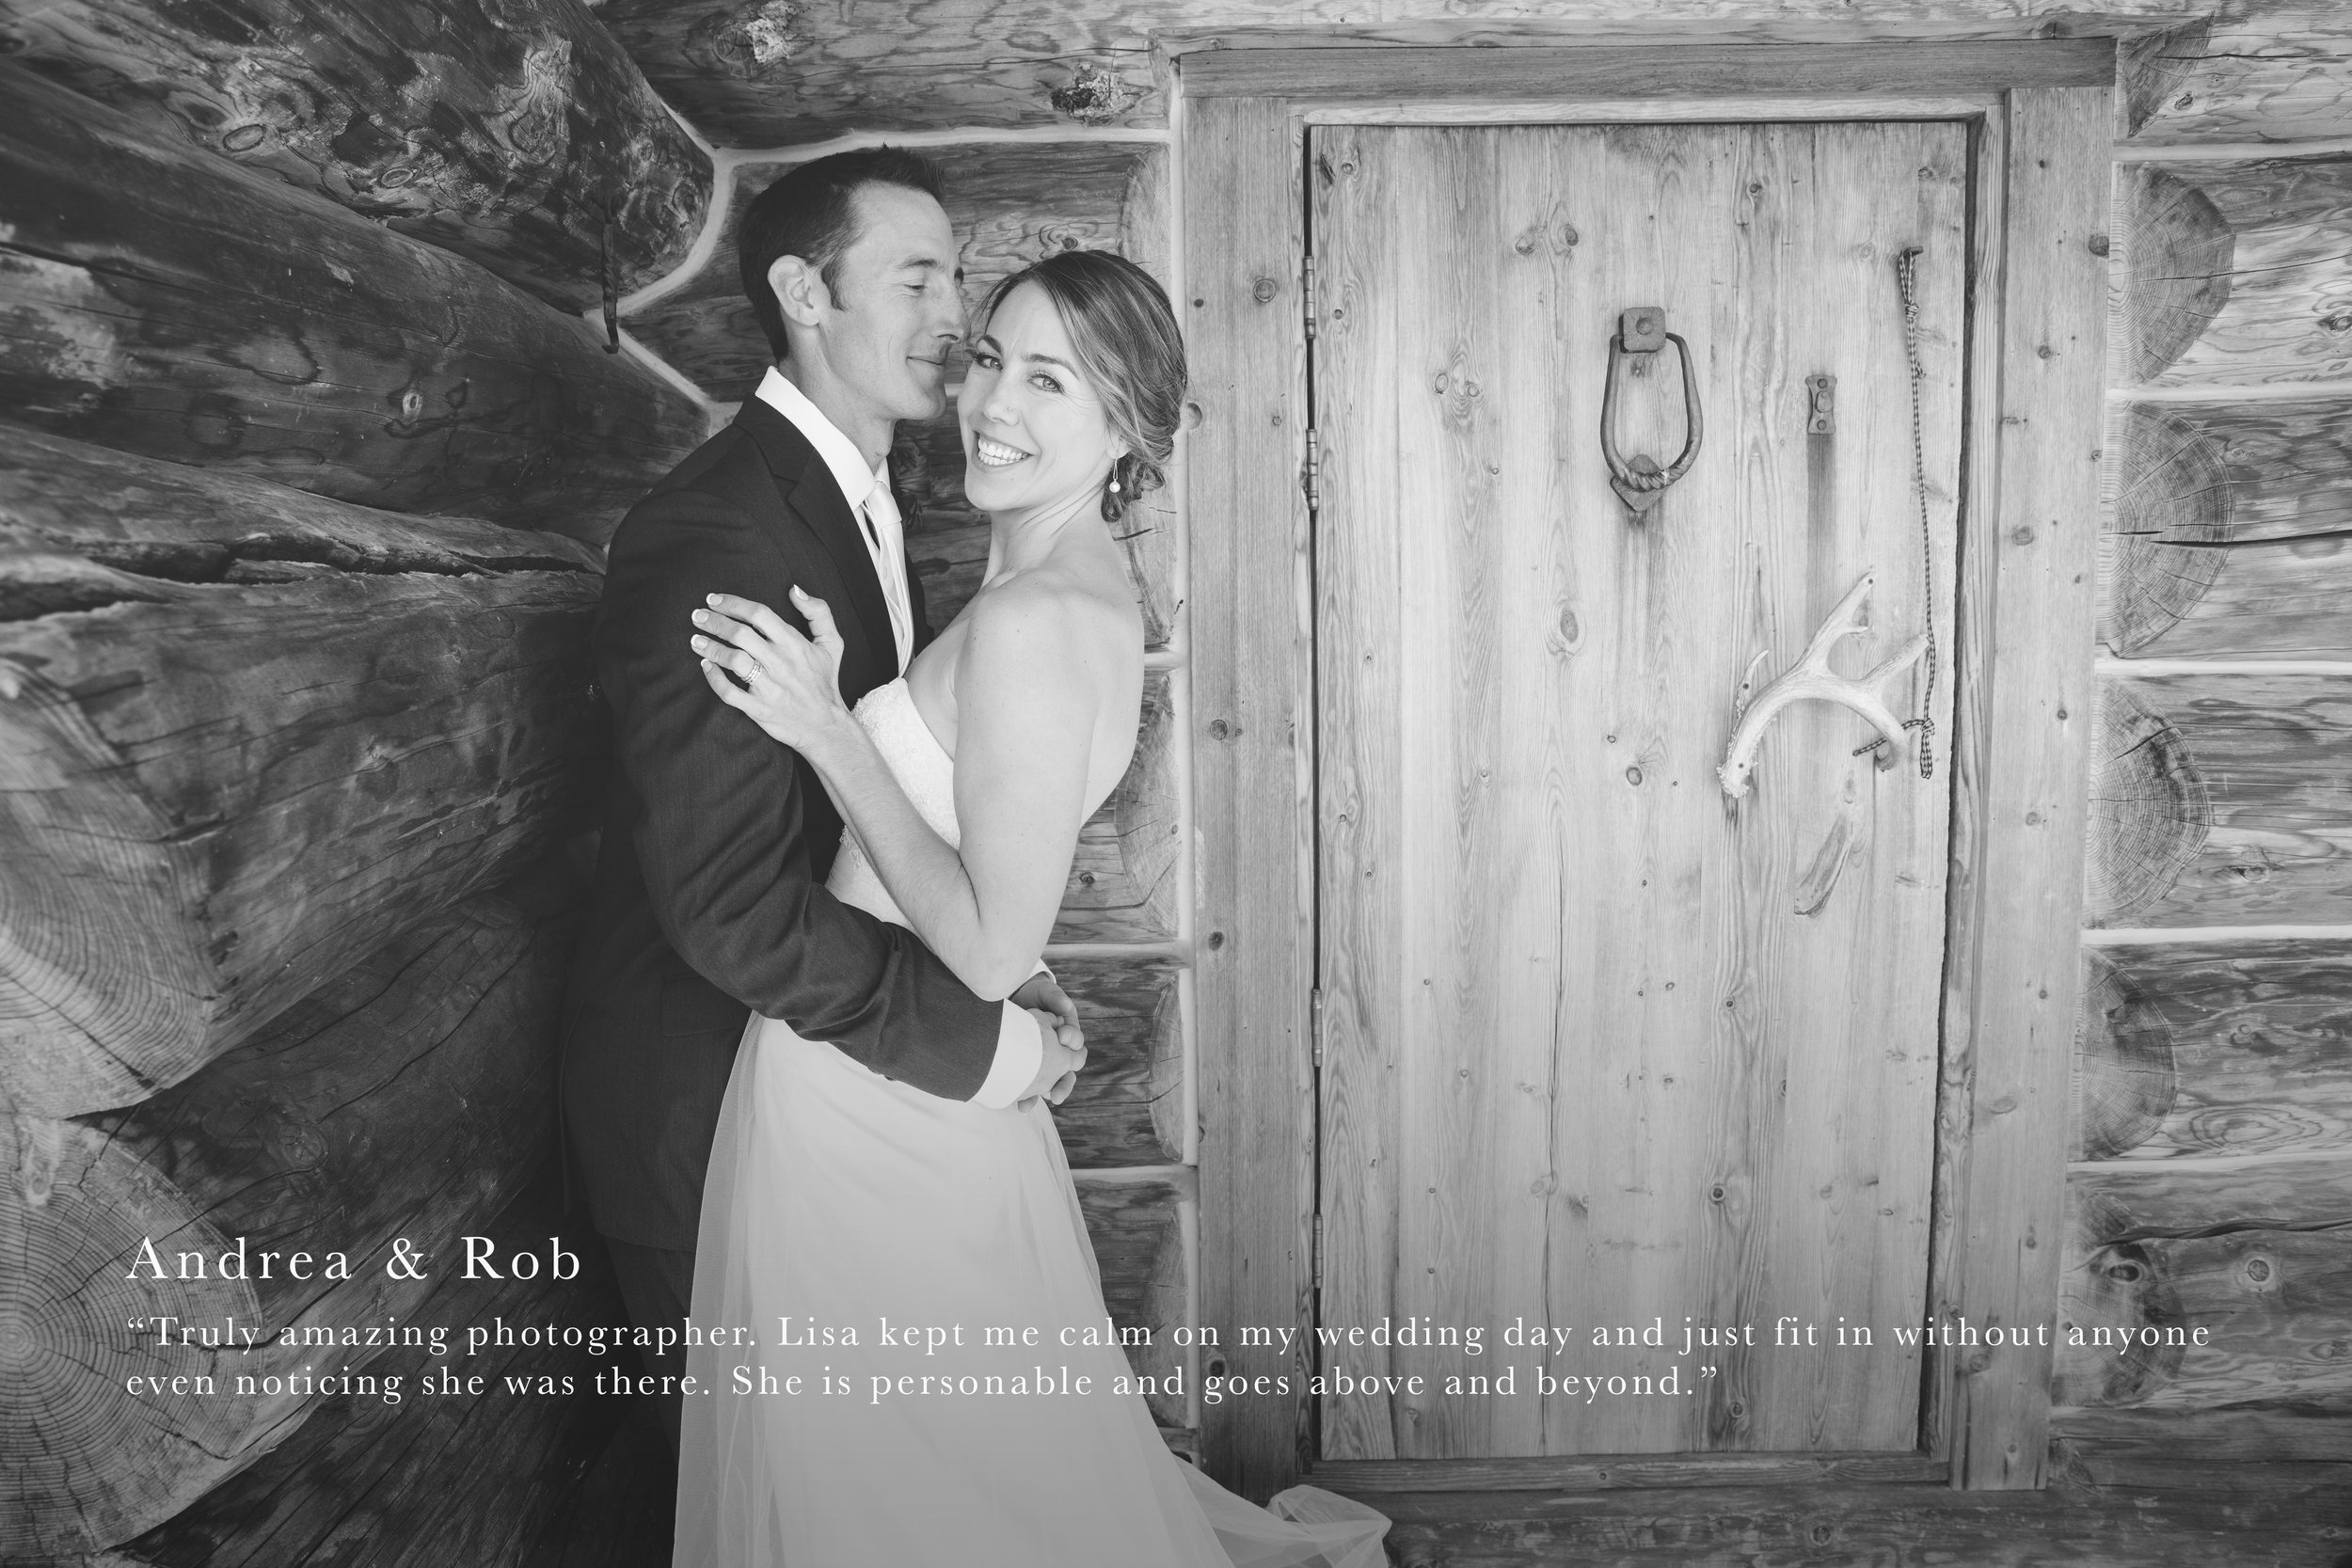 Wedding Photography Review - Andrea & Rob